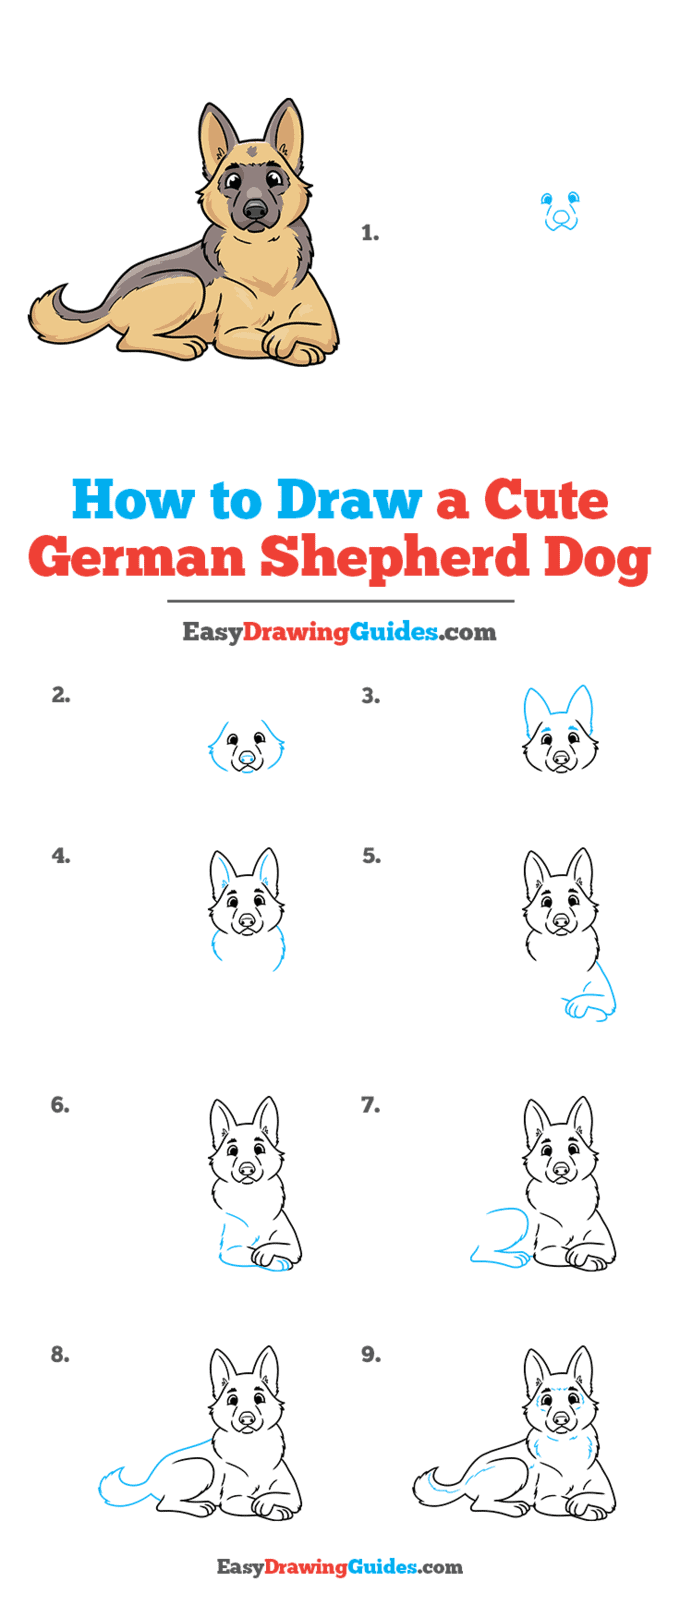 How to Draw a Cute German Shepherd Dog Step by Step Tutorial Image